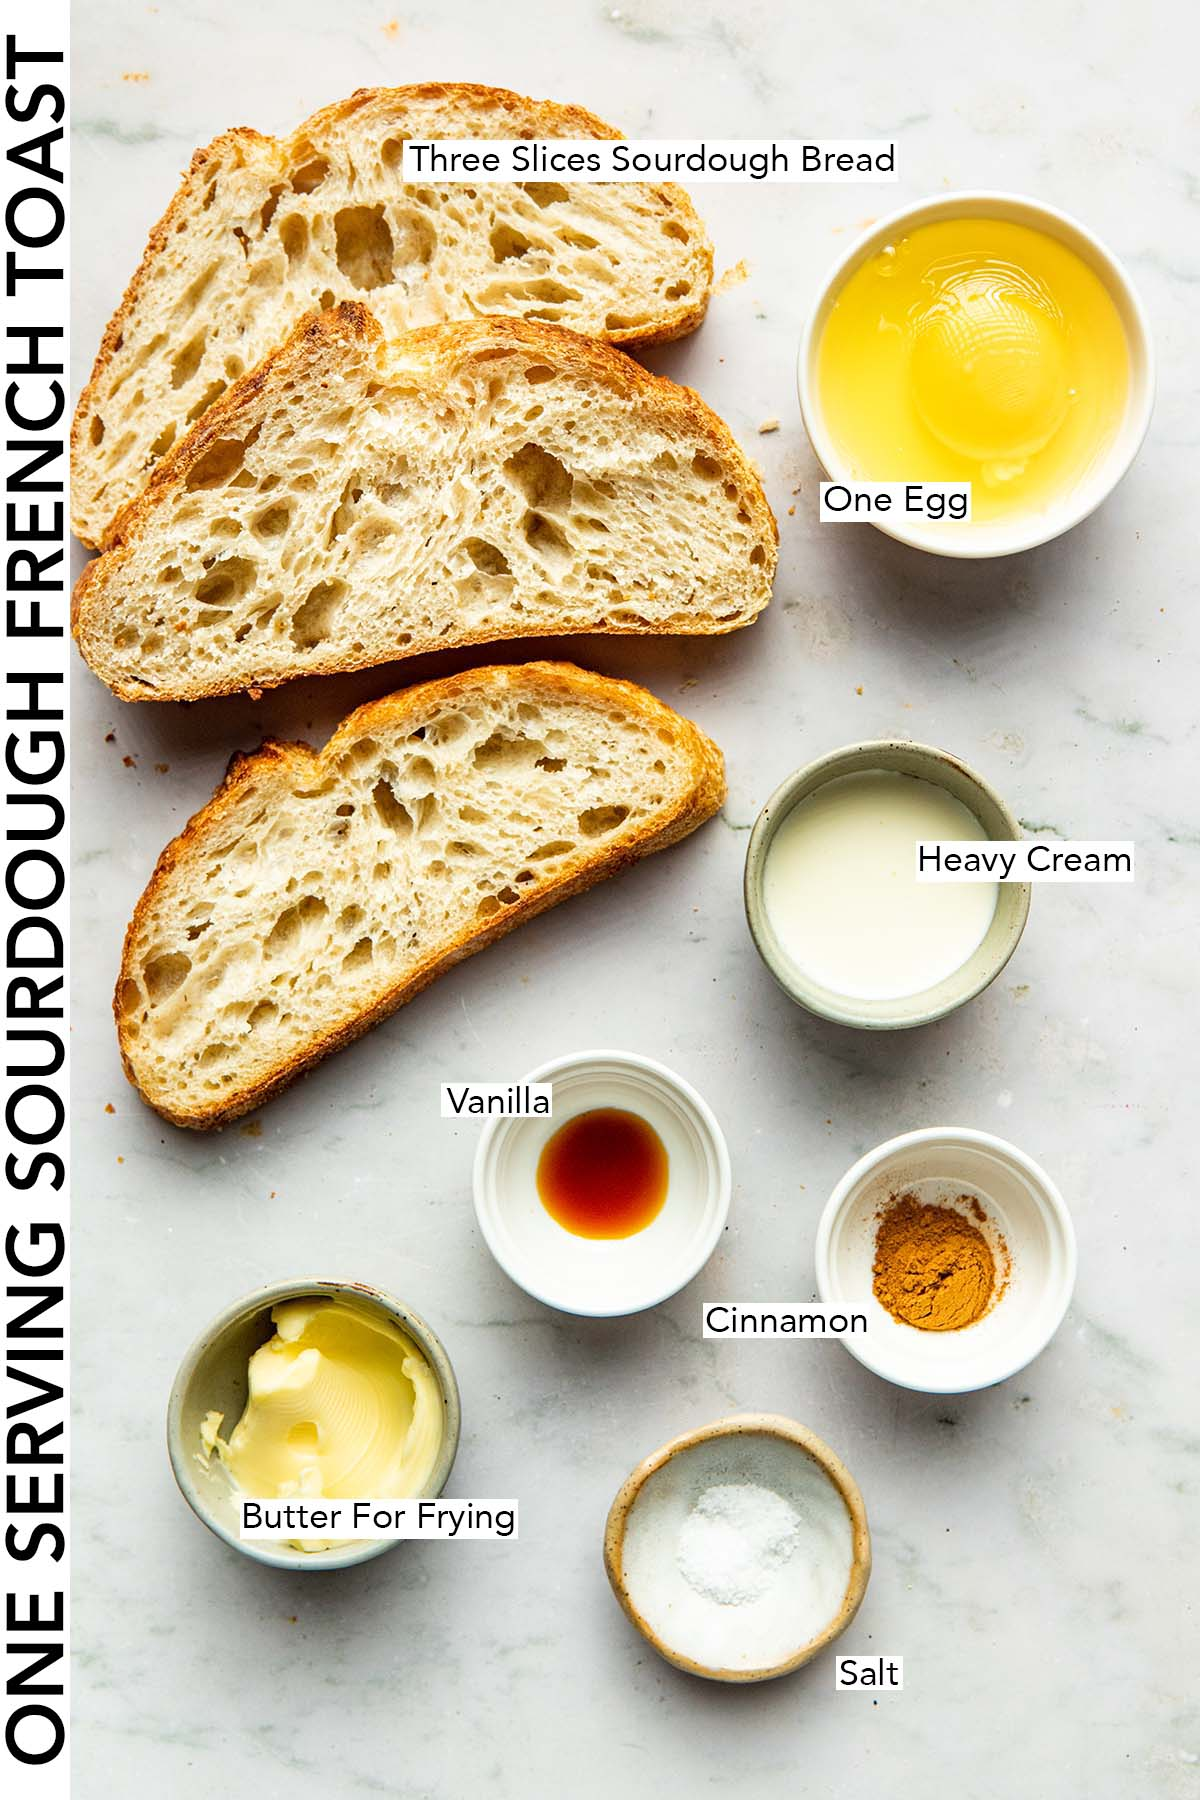 Ingredients to make one serving of sourdough French toast.